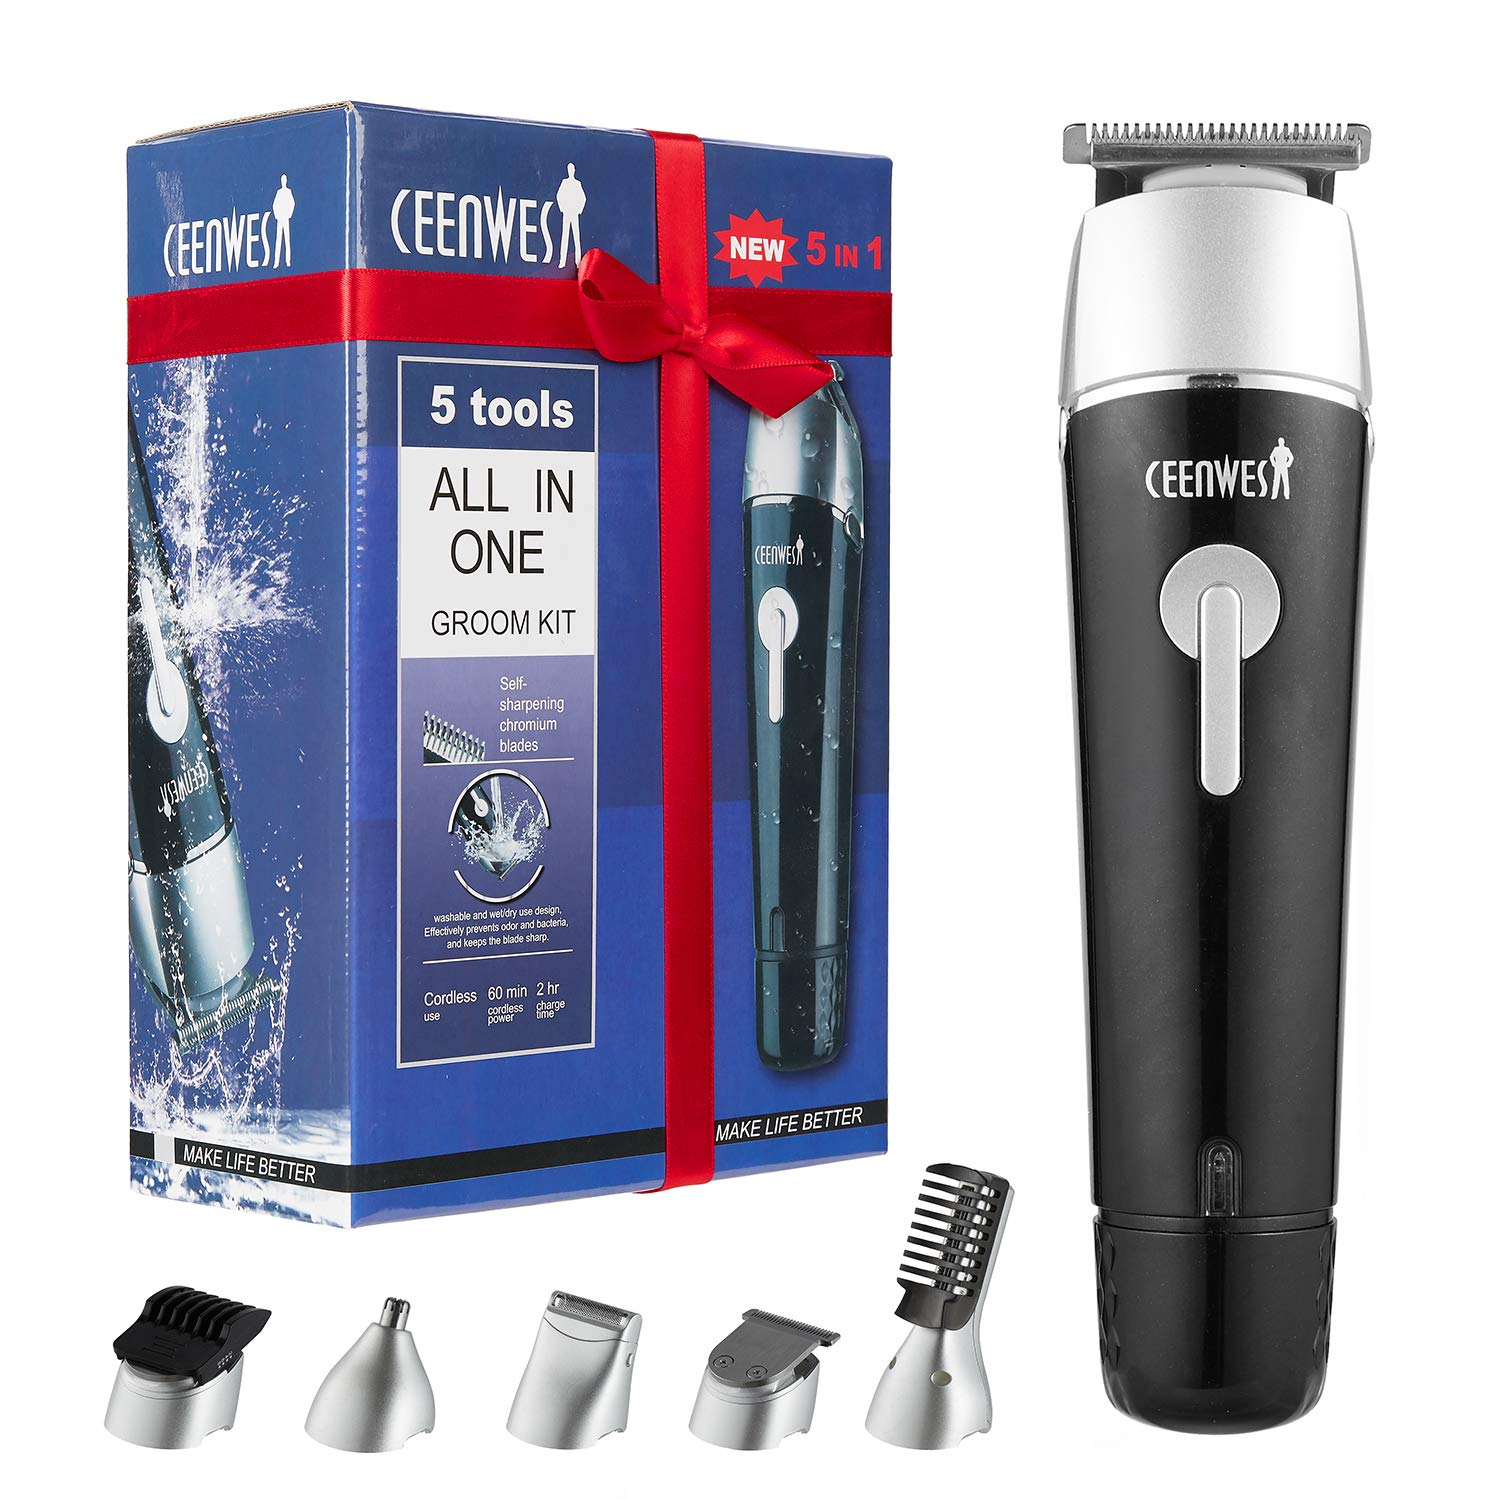 CEENWES Updated Version 5 in 1 Waterproof Man's Grooming Kit Hair Clippers Professional Beard Trimmer Dual Shaver Rechargeable Body Trimmer Nose Hair Trimmer Cordless Precision Trimmer by CEENWES